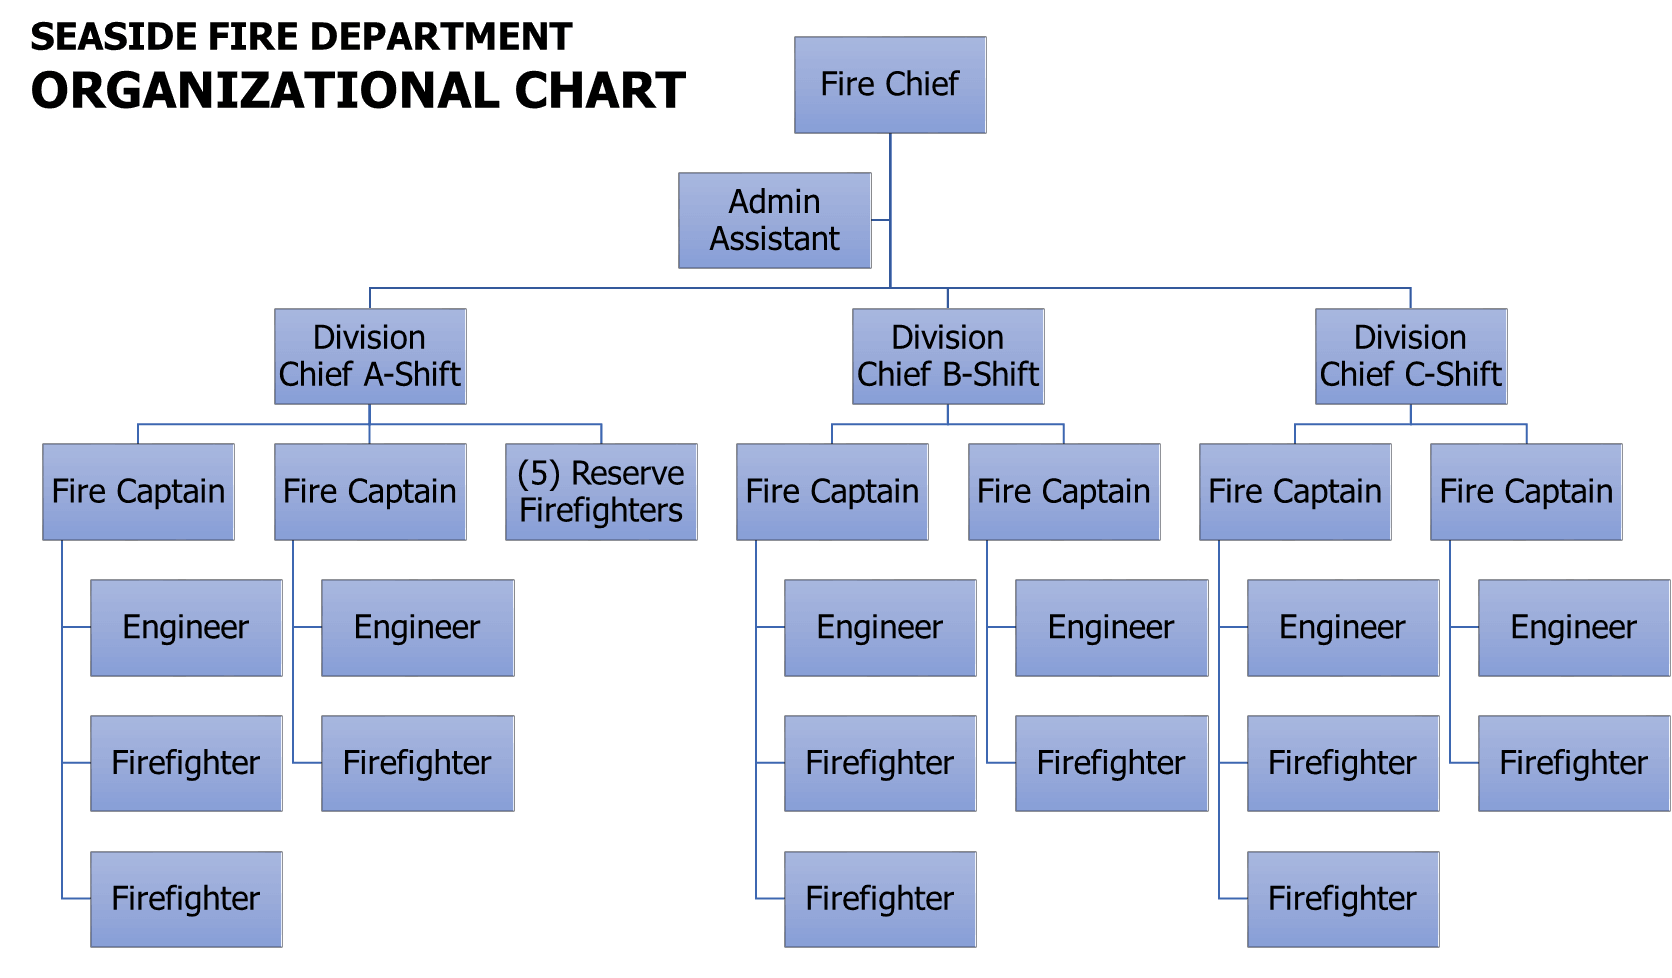 Seaside Fire Department Organizational Chart